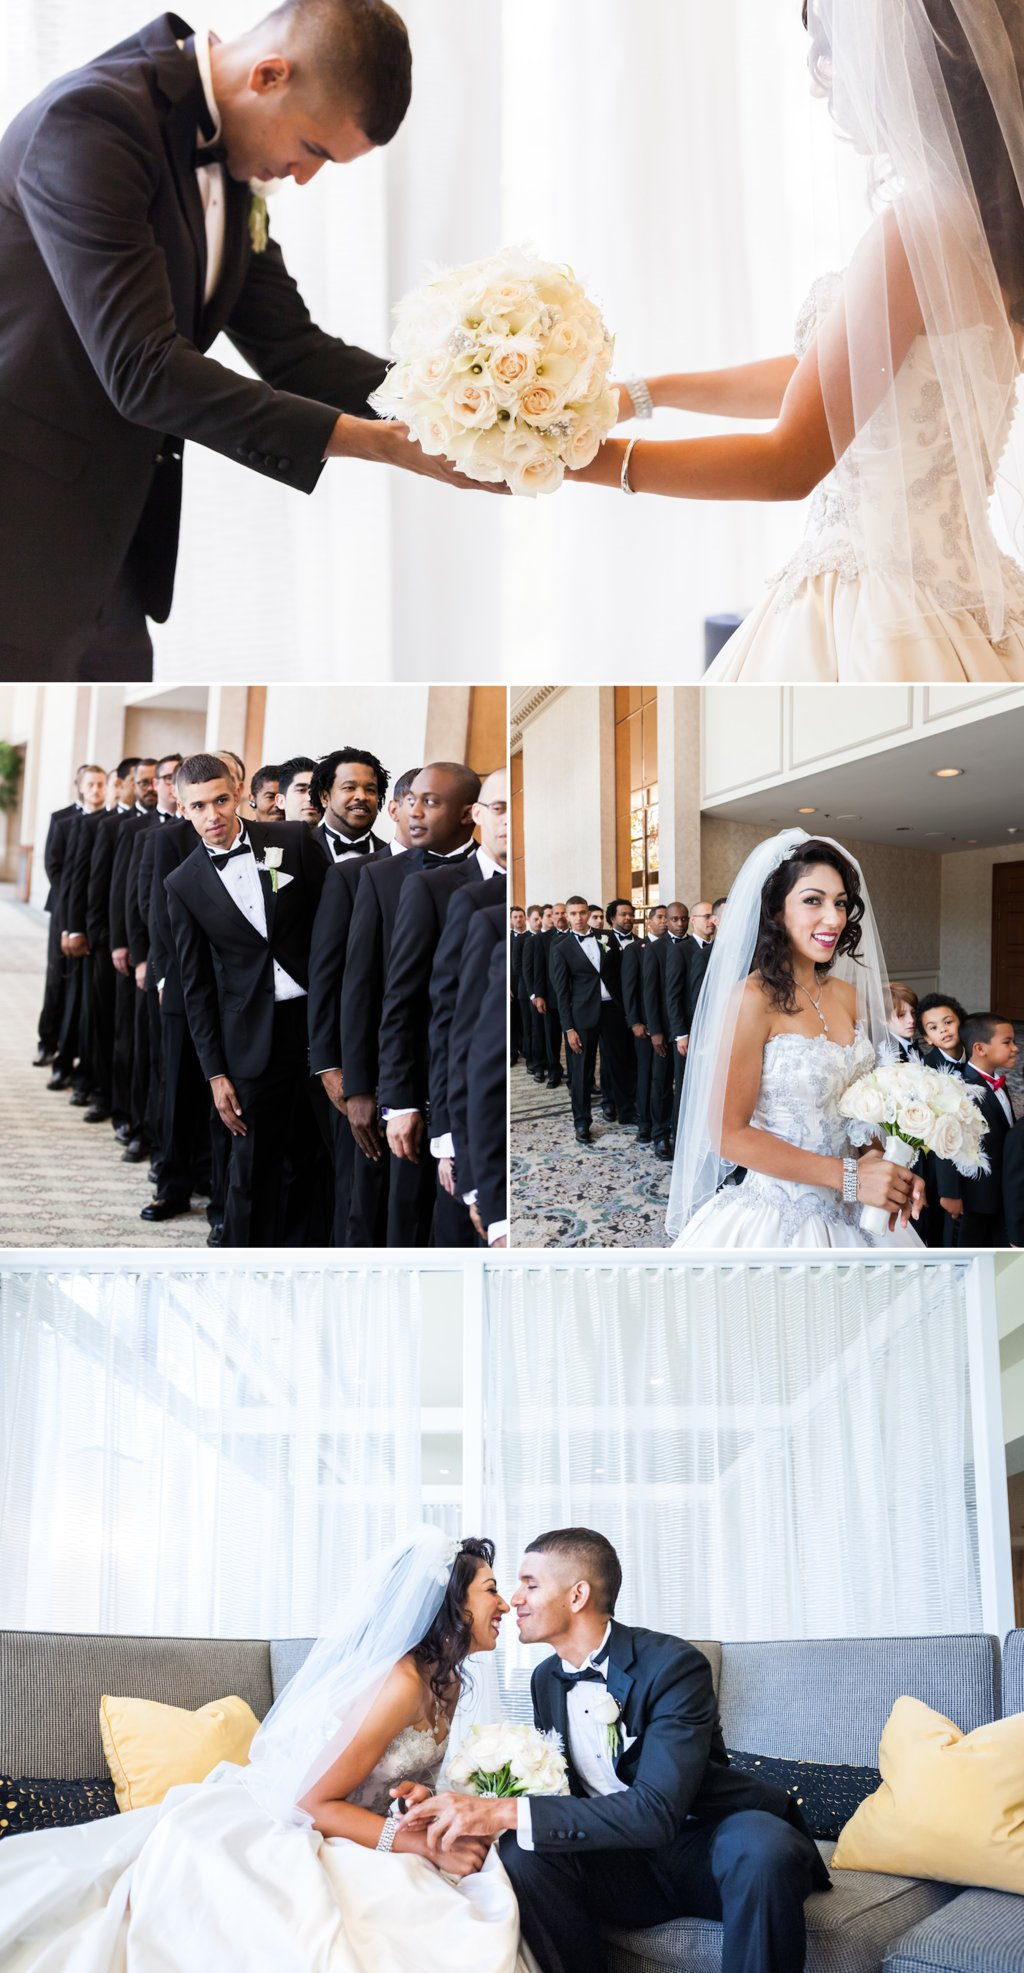 California-bride-and-groom-take-portraits-at-elegant-la-wedding-venue-2.full